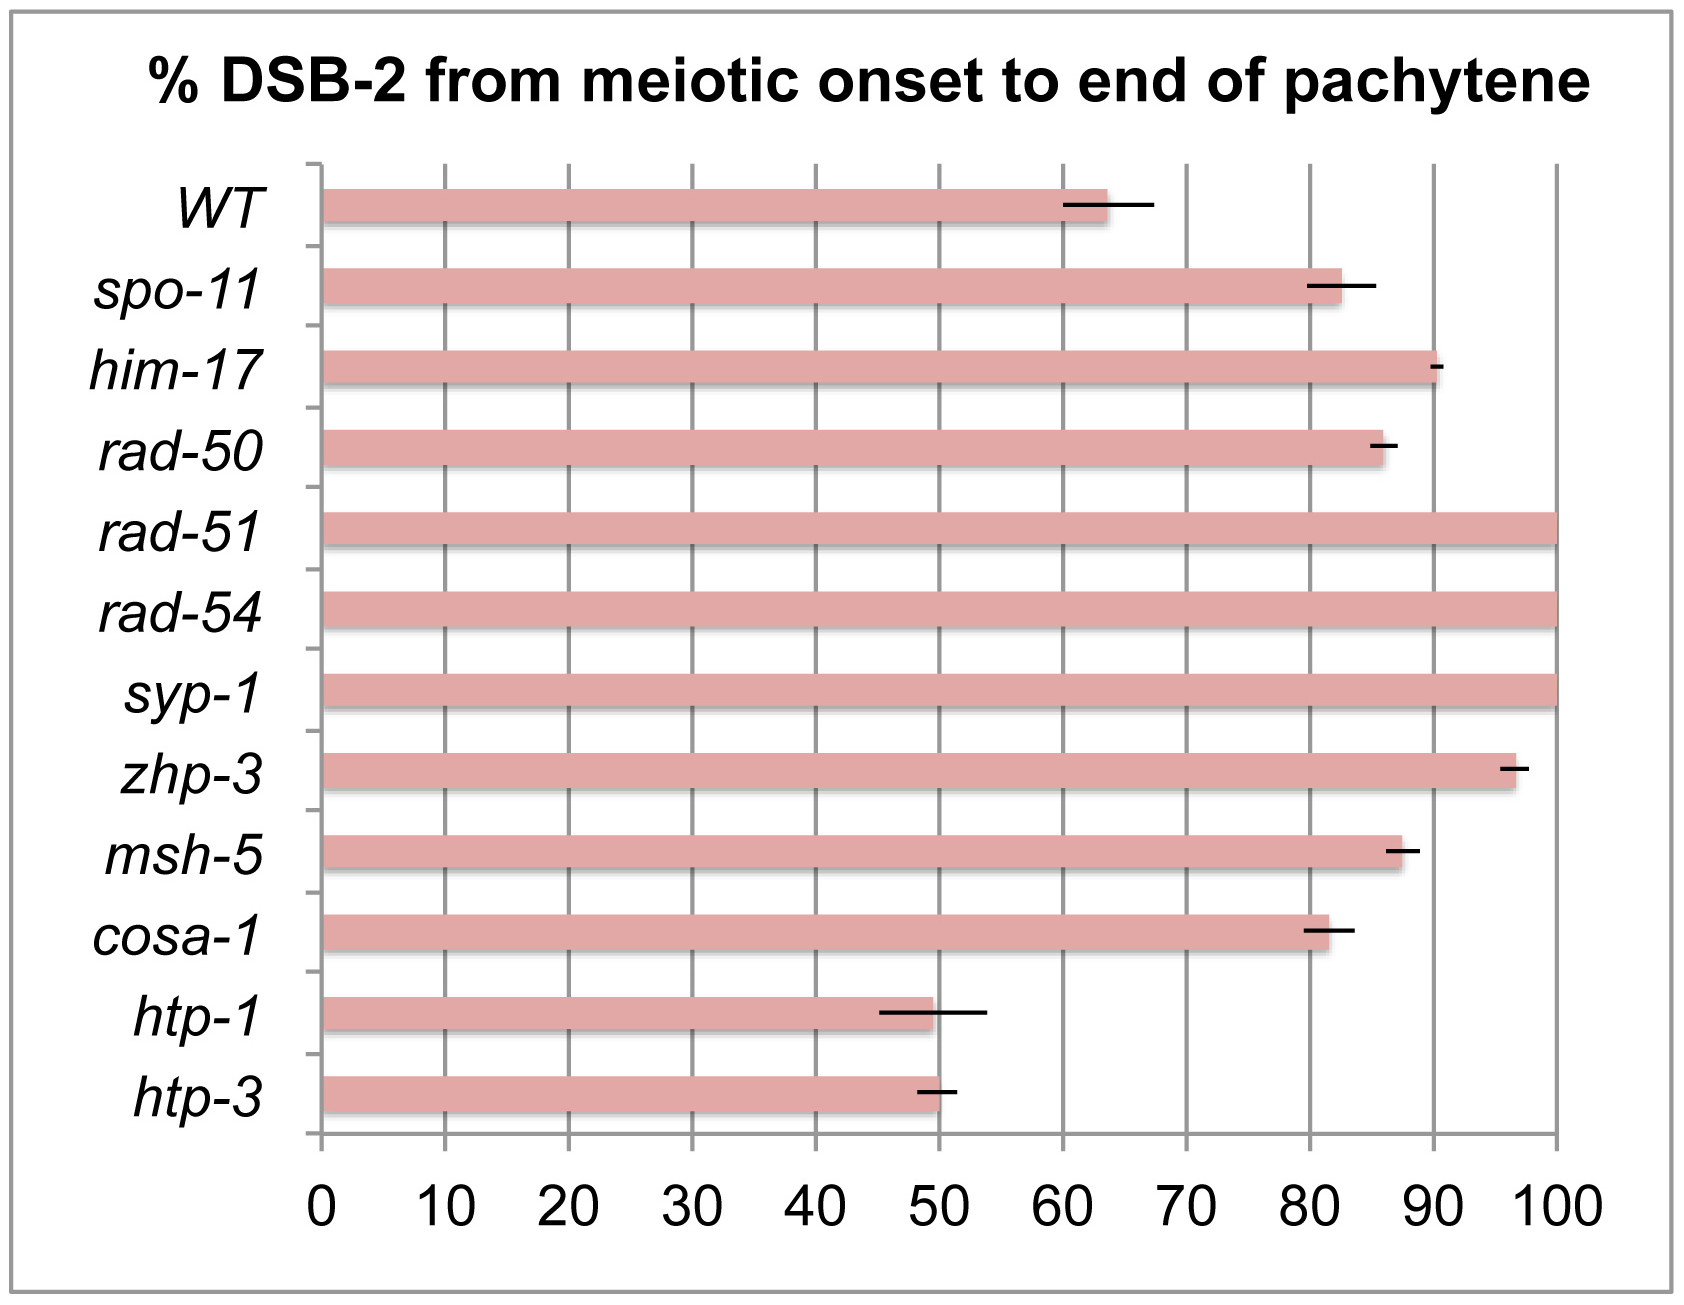 Quantitation of the DSB-2 positive zone in WT and meiotic mutants.